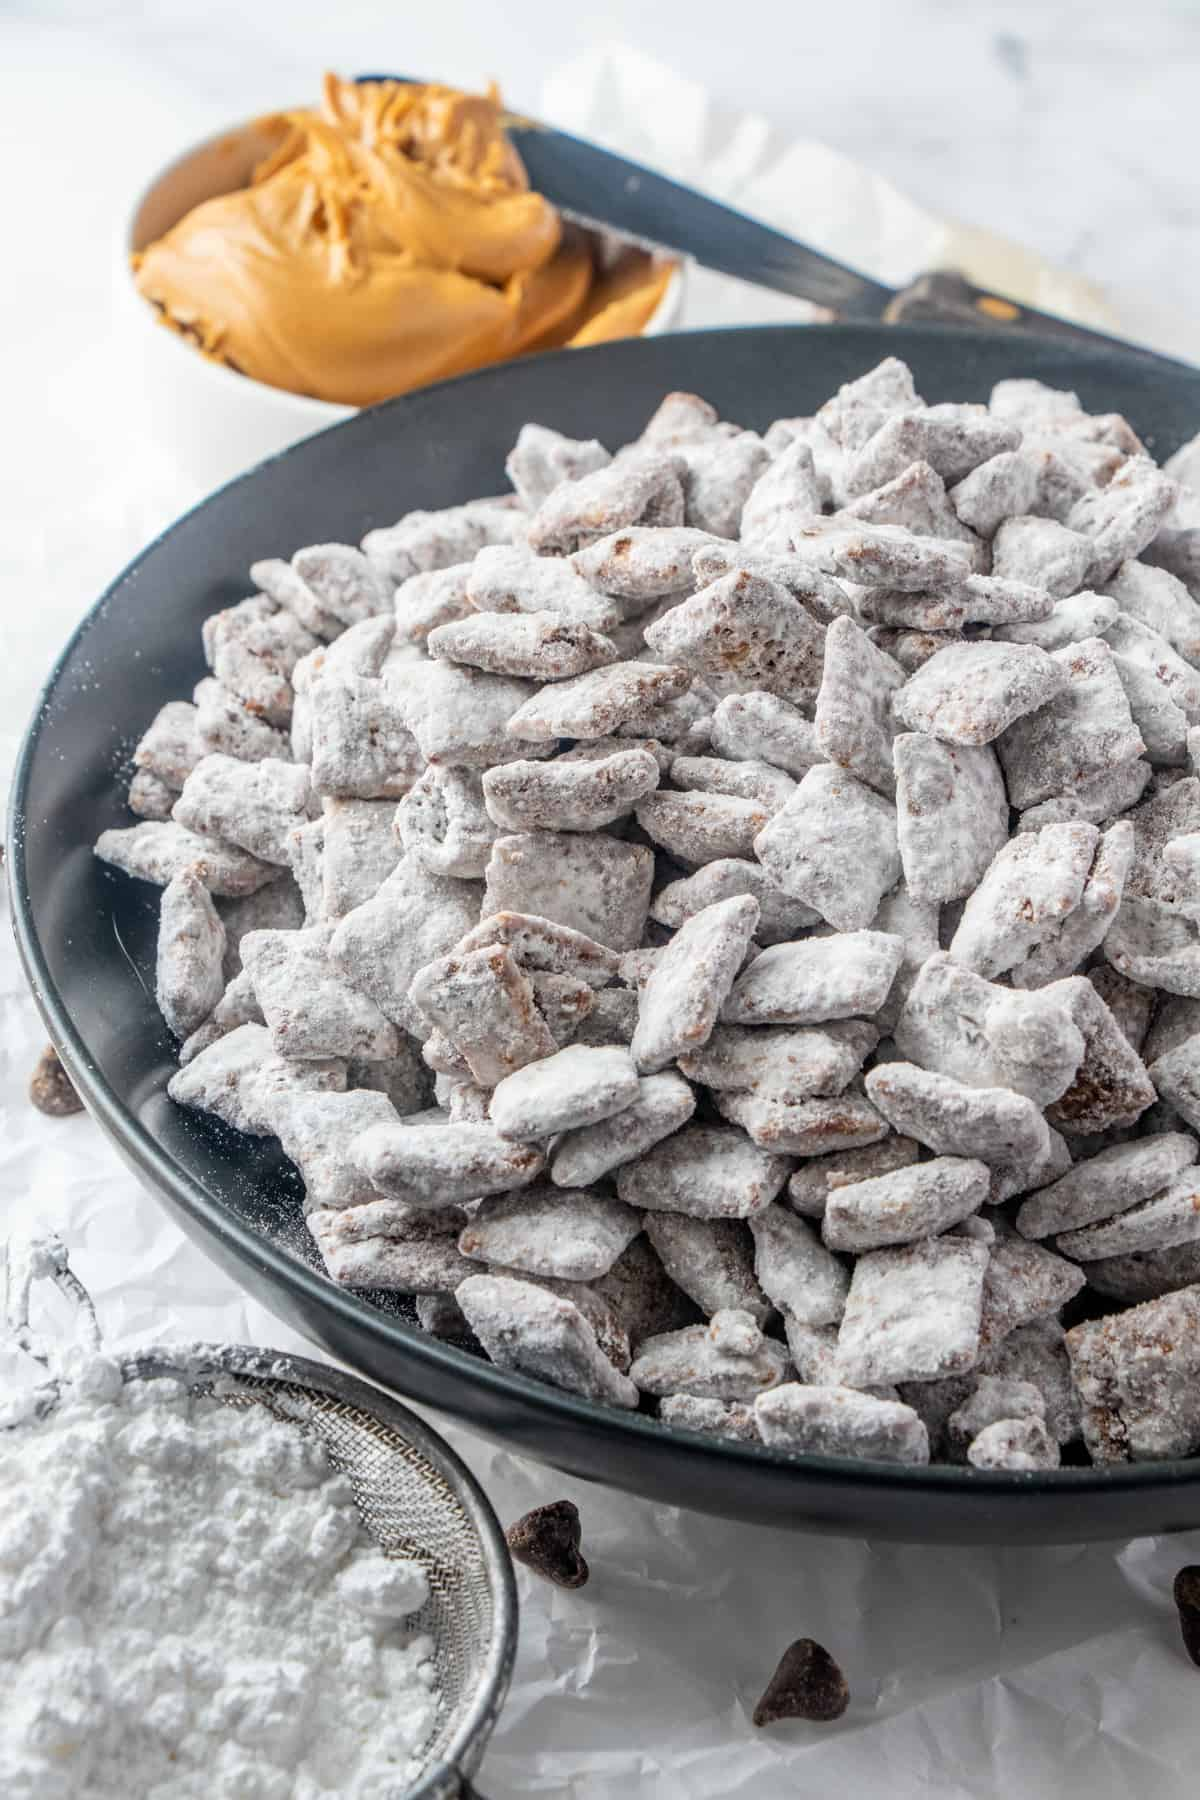 Puppy Chow in black bowl with bowl of peanut butter and sifter of powdered sugar